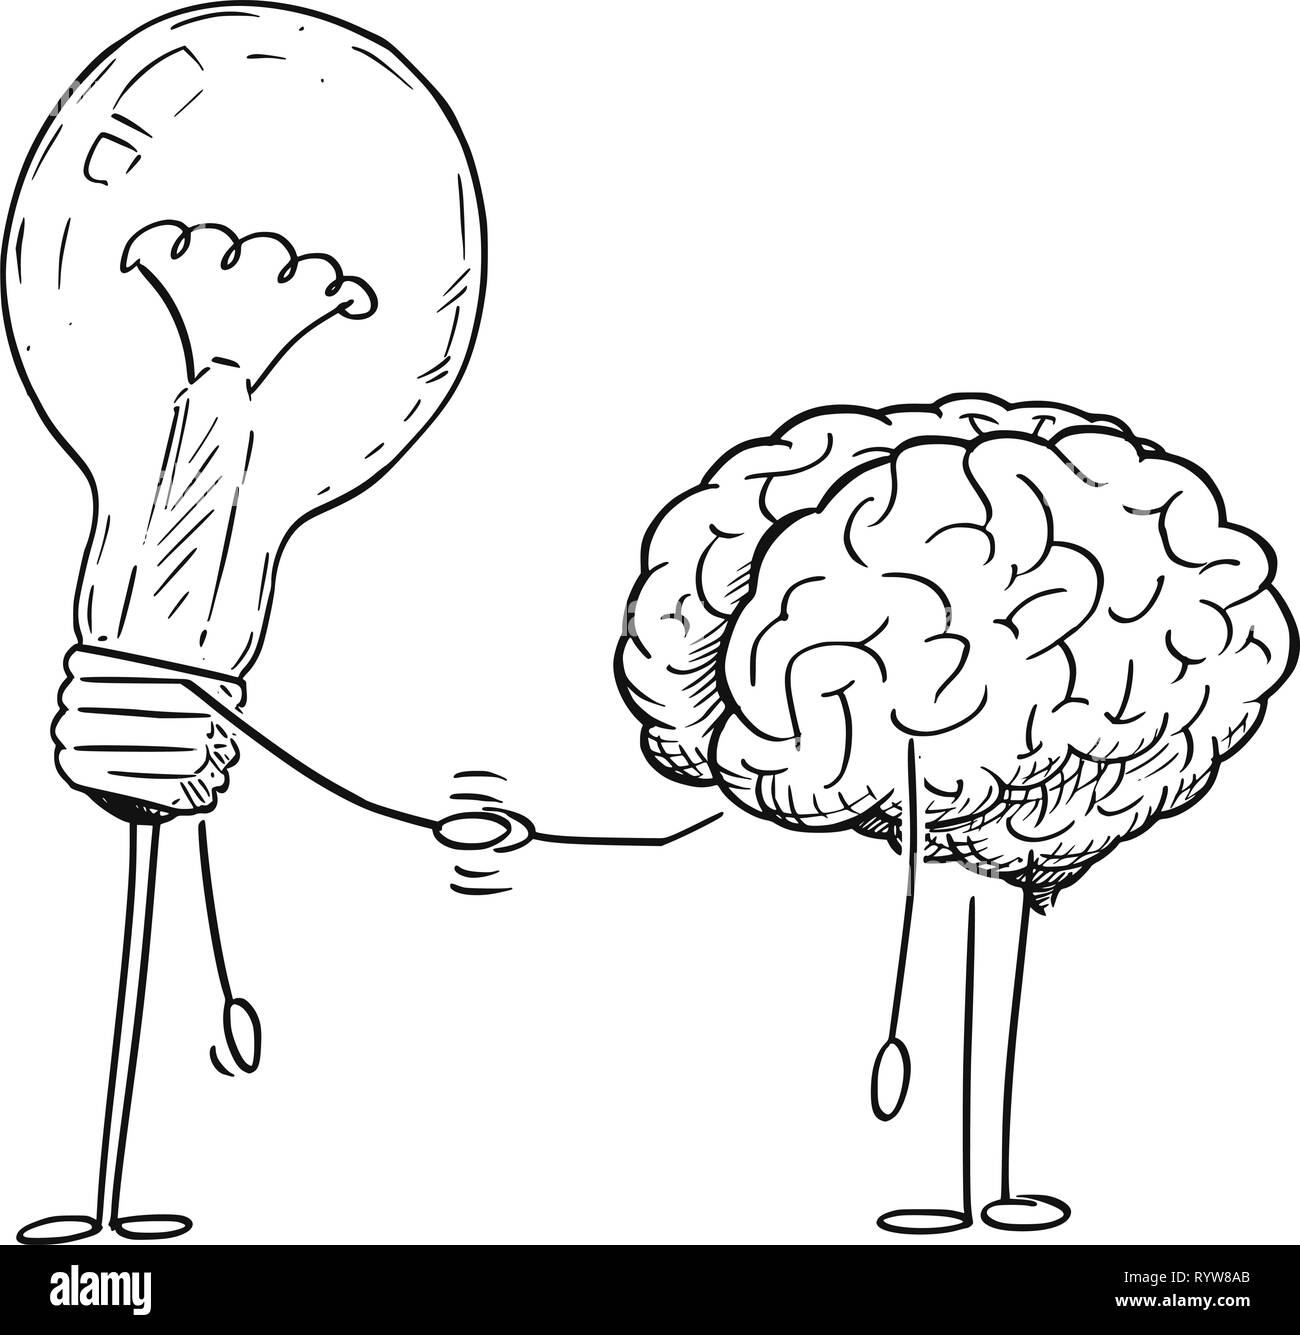 Cartoon Drawing of Brain and Lightbulb Characters Shaking Hands - Stock Image